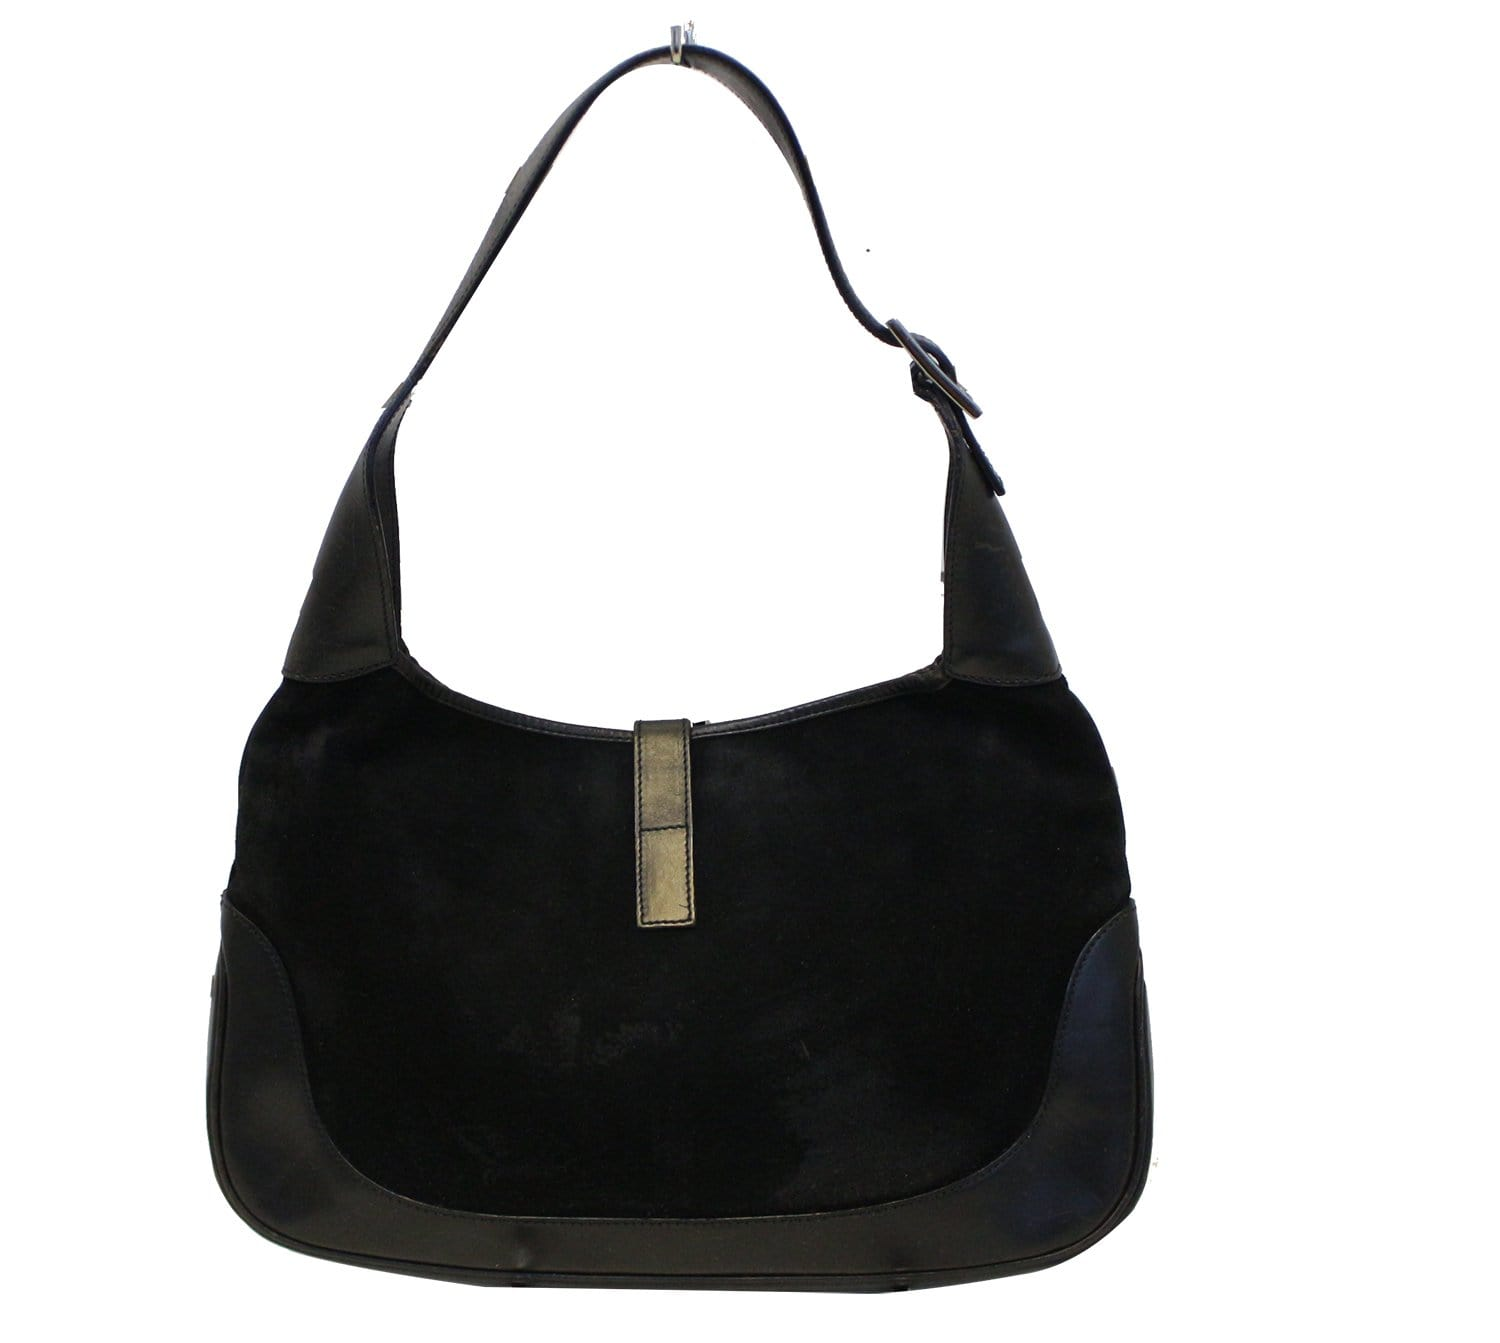 16f60cff84a0a5 Gucci Black Suede Leather Jackie Hobo Shoulder Bag